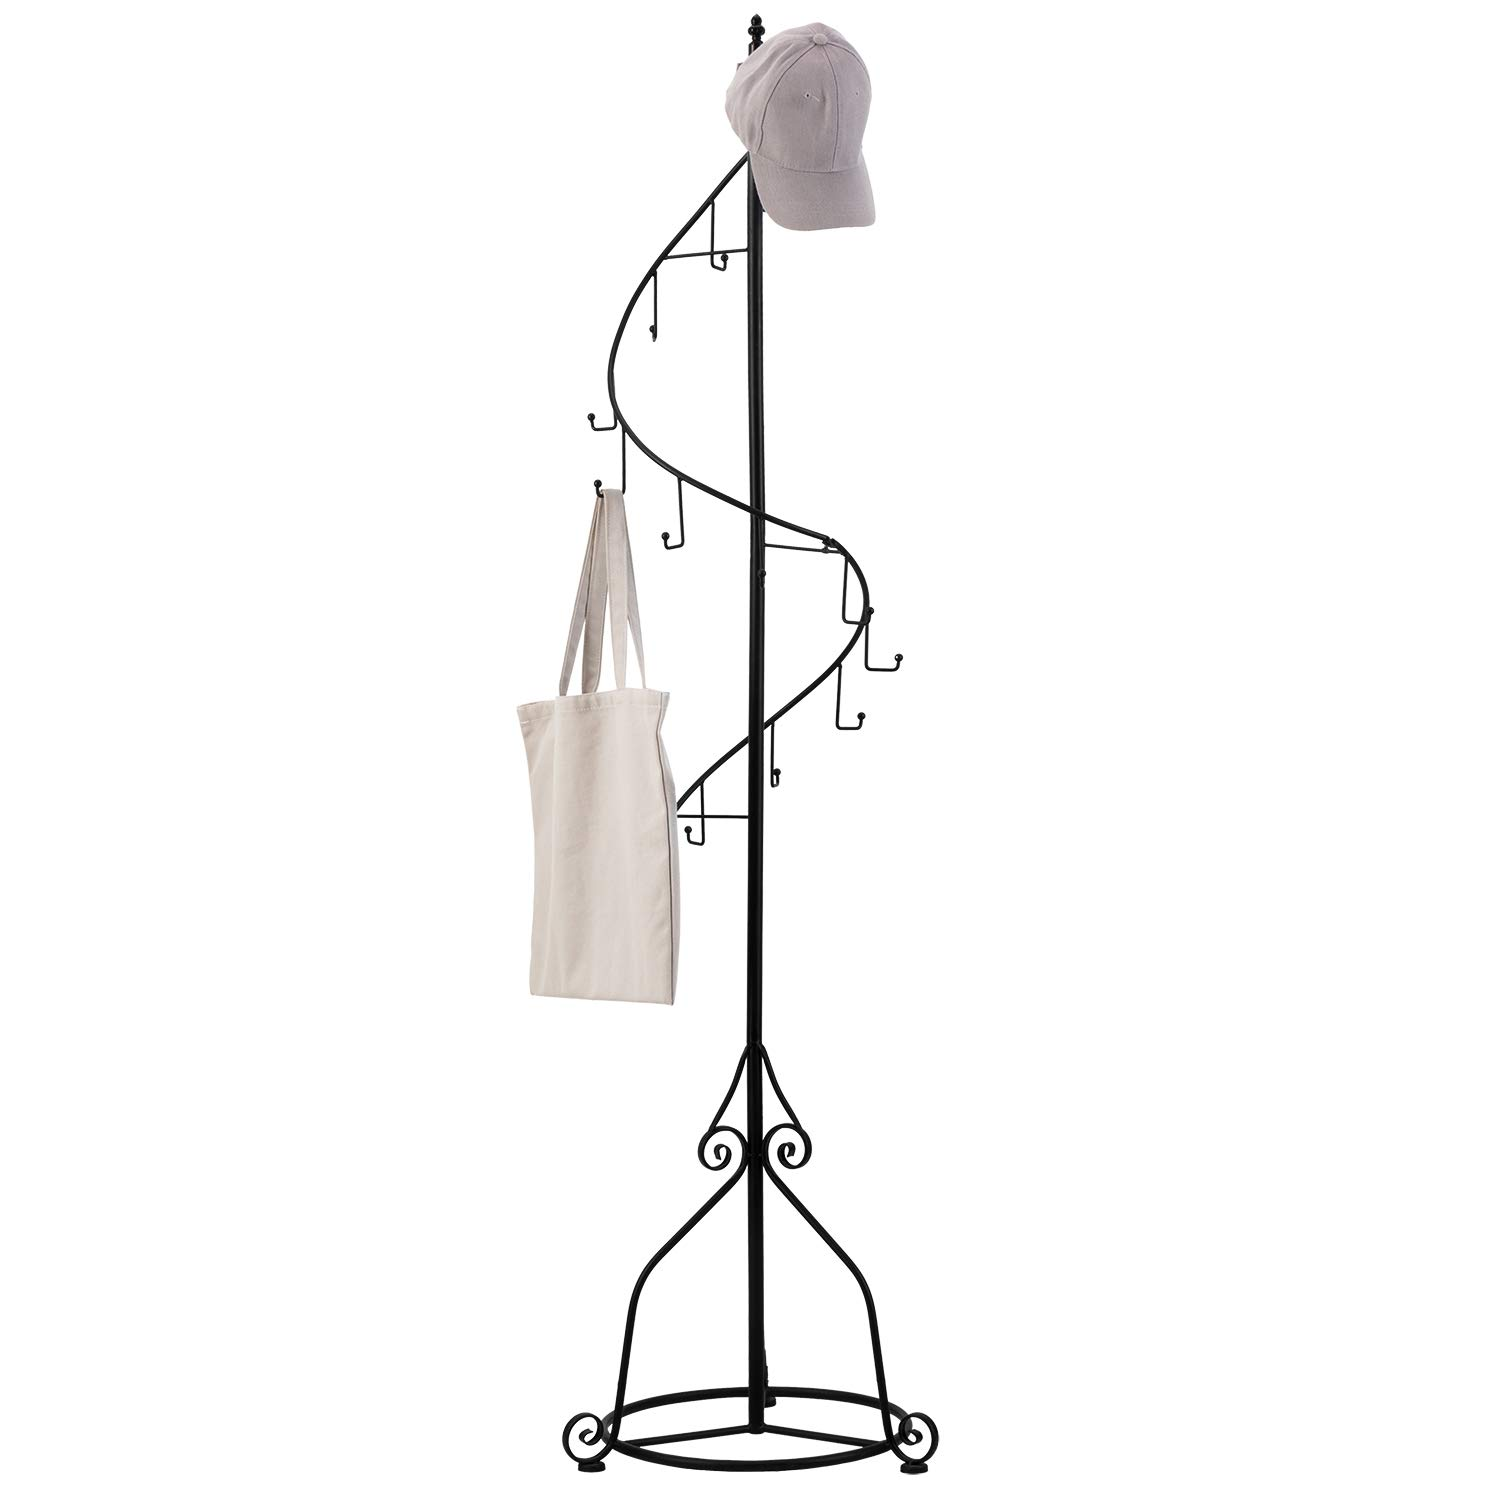 MyGift Elegant Black Metal 14 Hook Spiral Coat Hanger Bag Display Garment Rack Stand